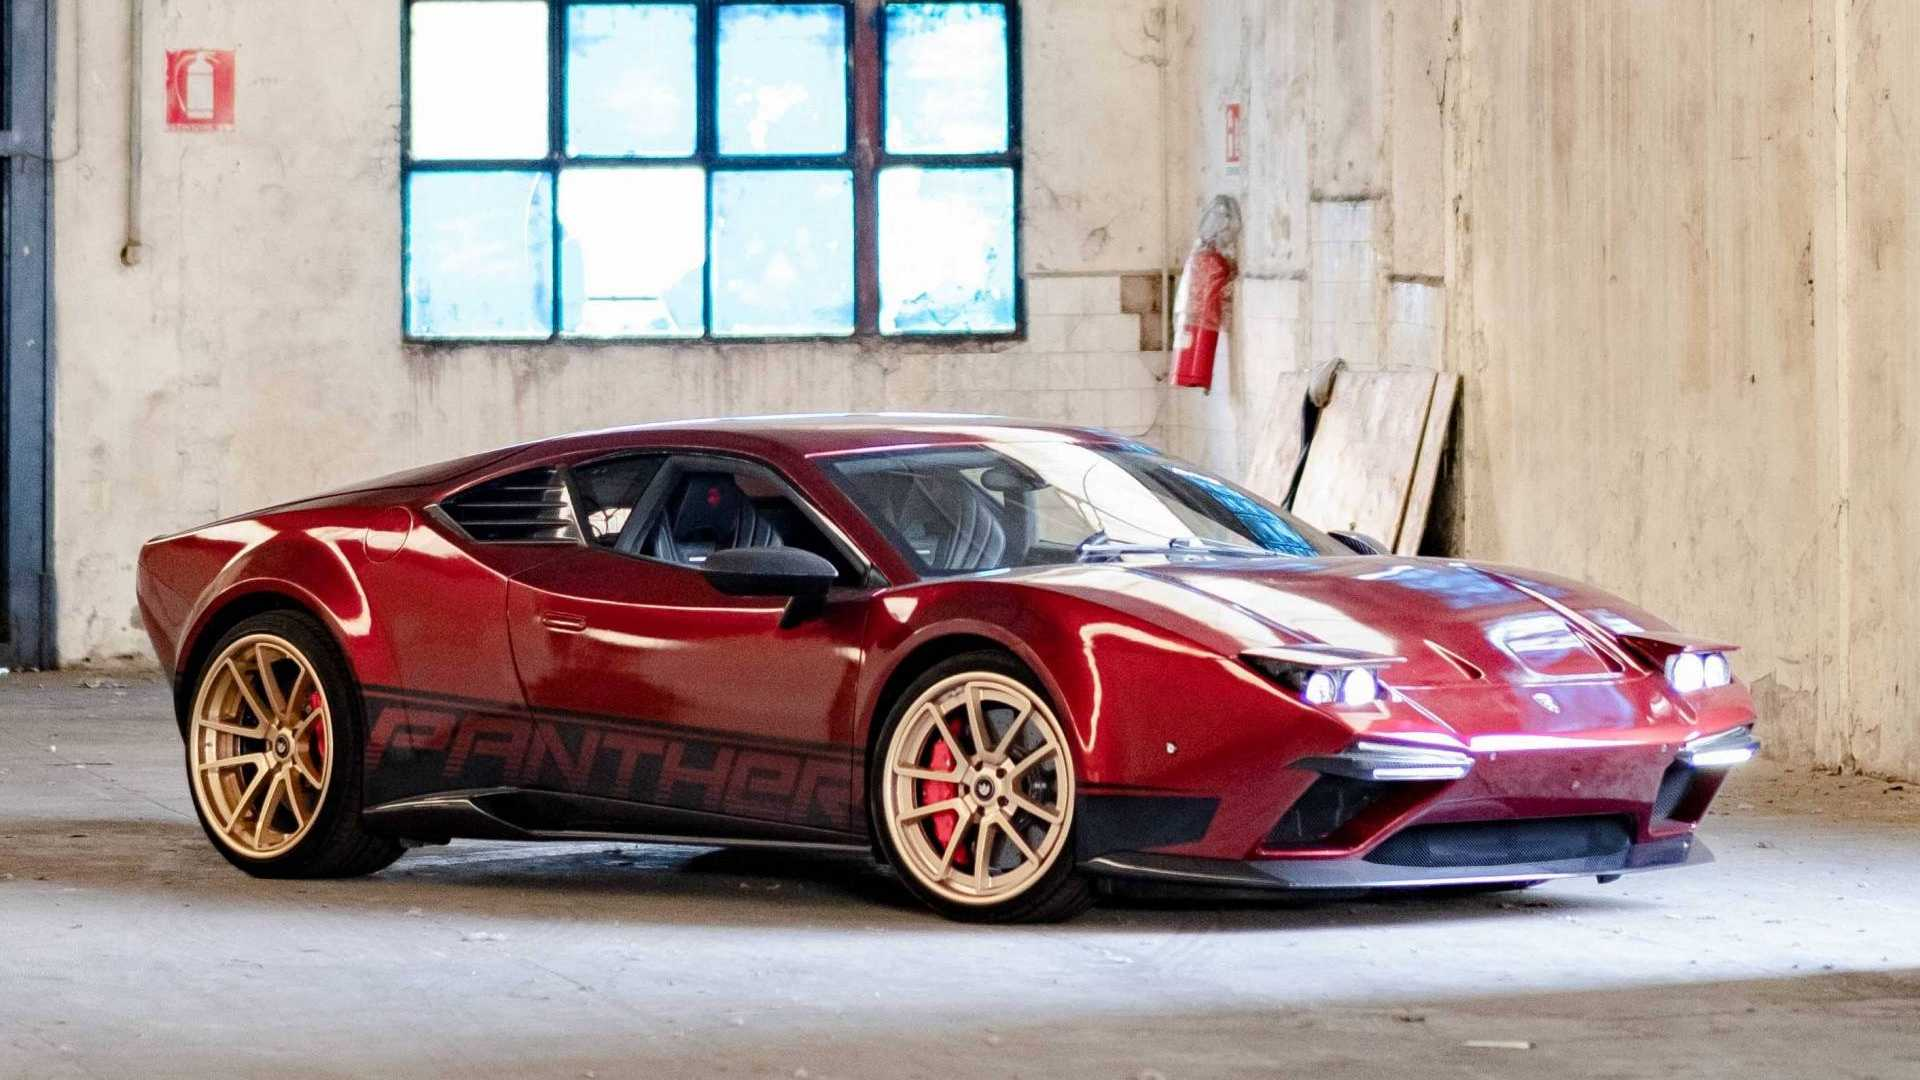 Coachbuilder Ares Design has revealed interior and exterior photos of is upcoming Project 1 supercar